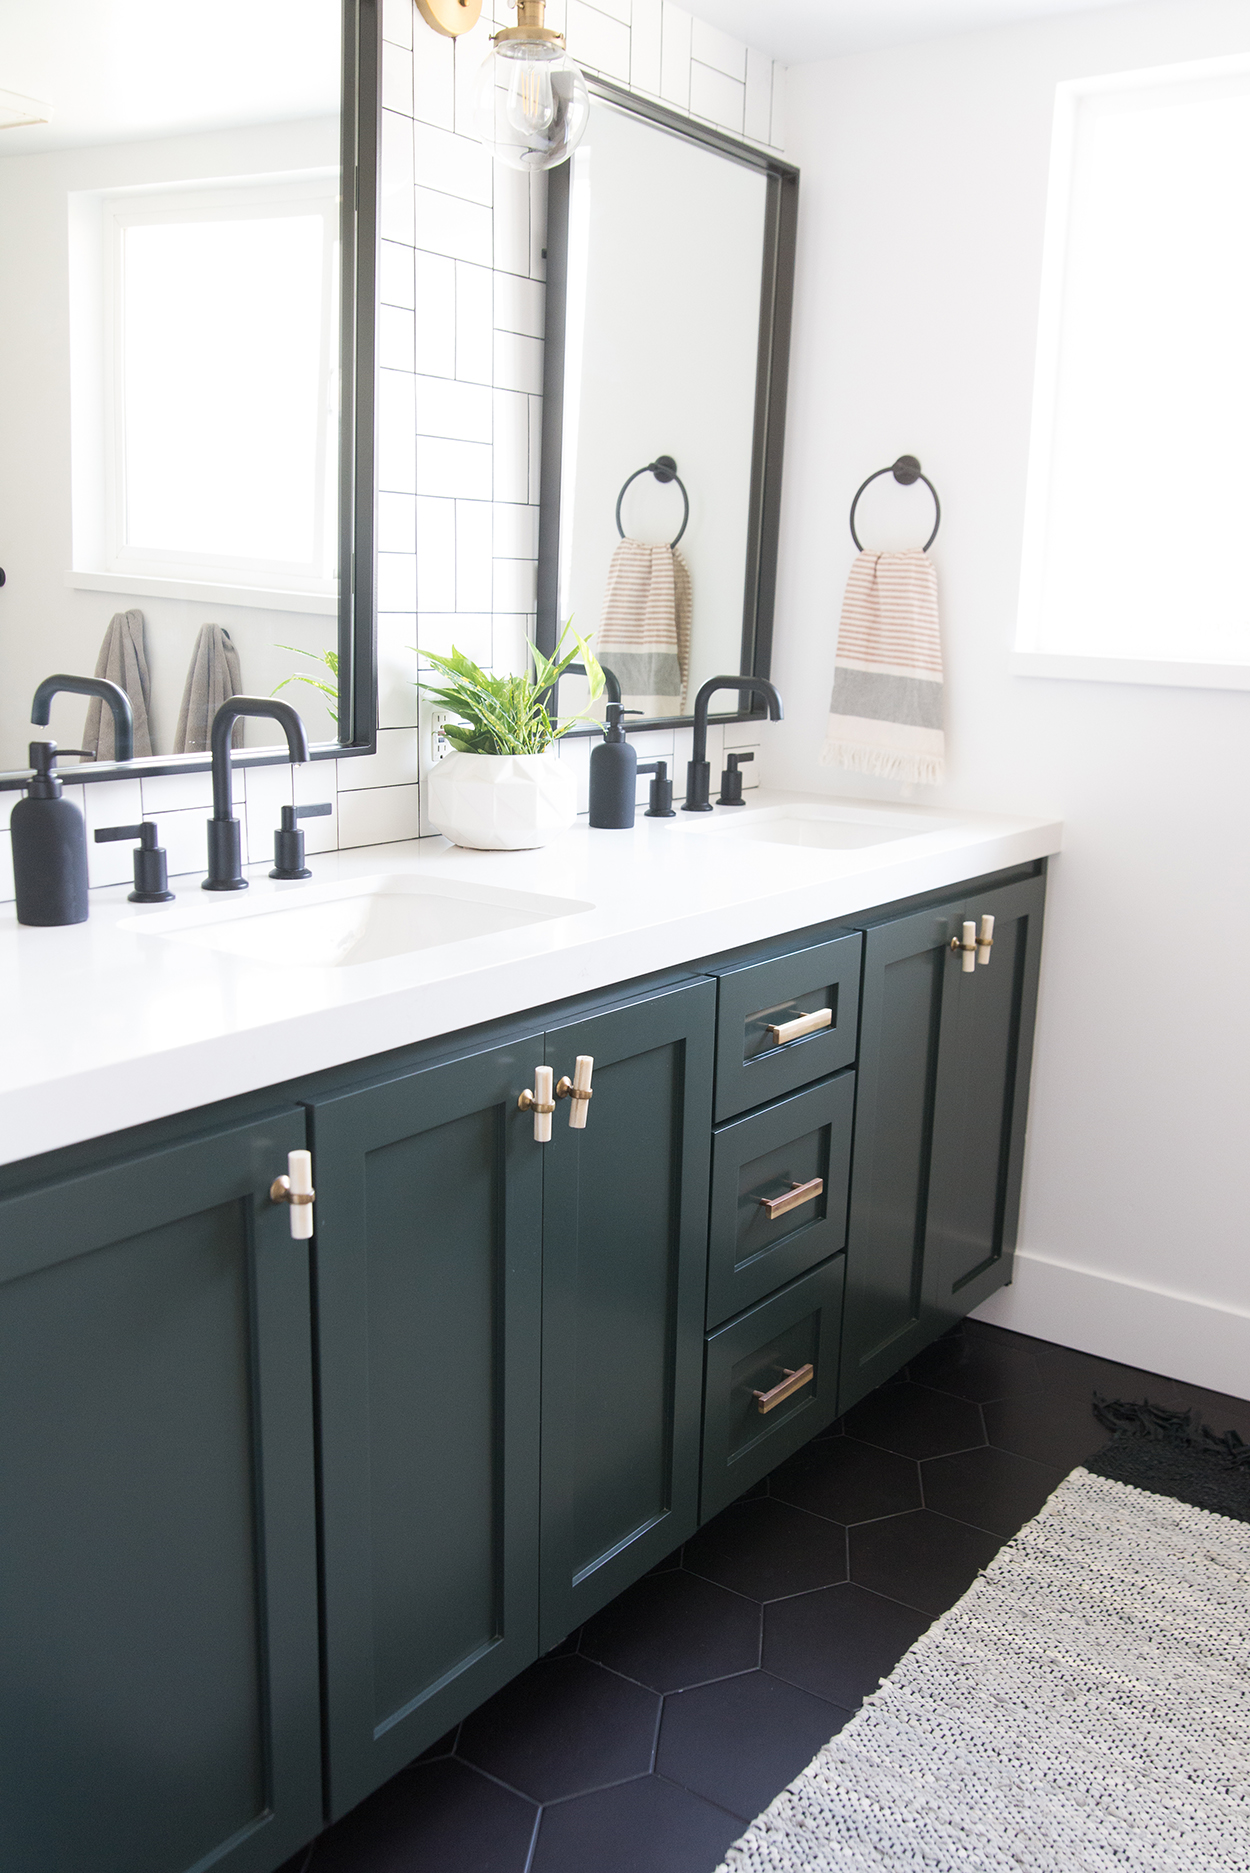 A black bathroom vanity with a white coutertop and black fixtures